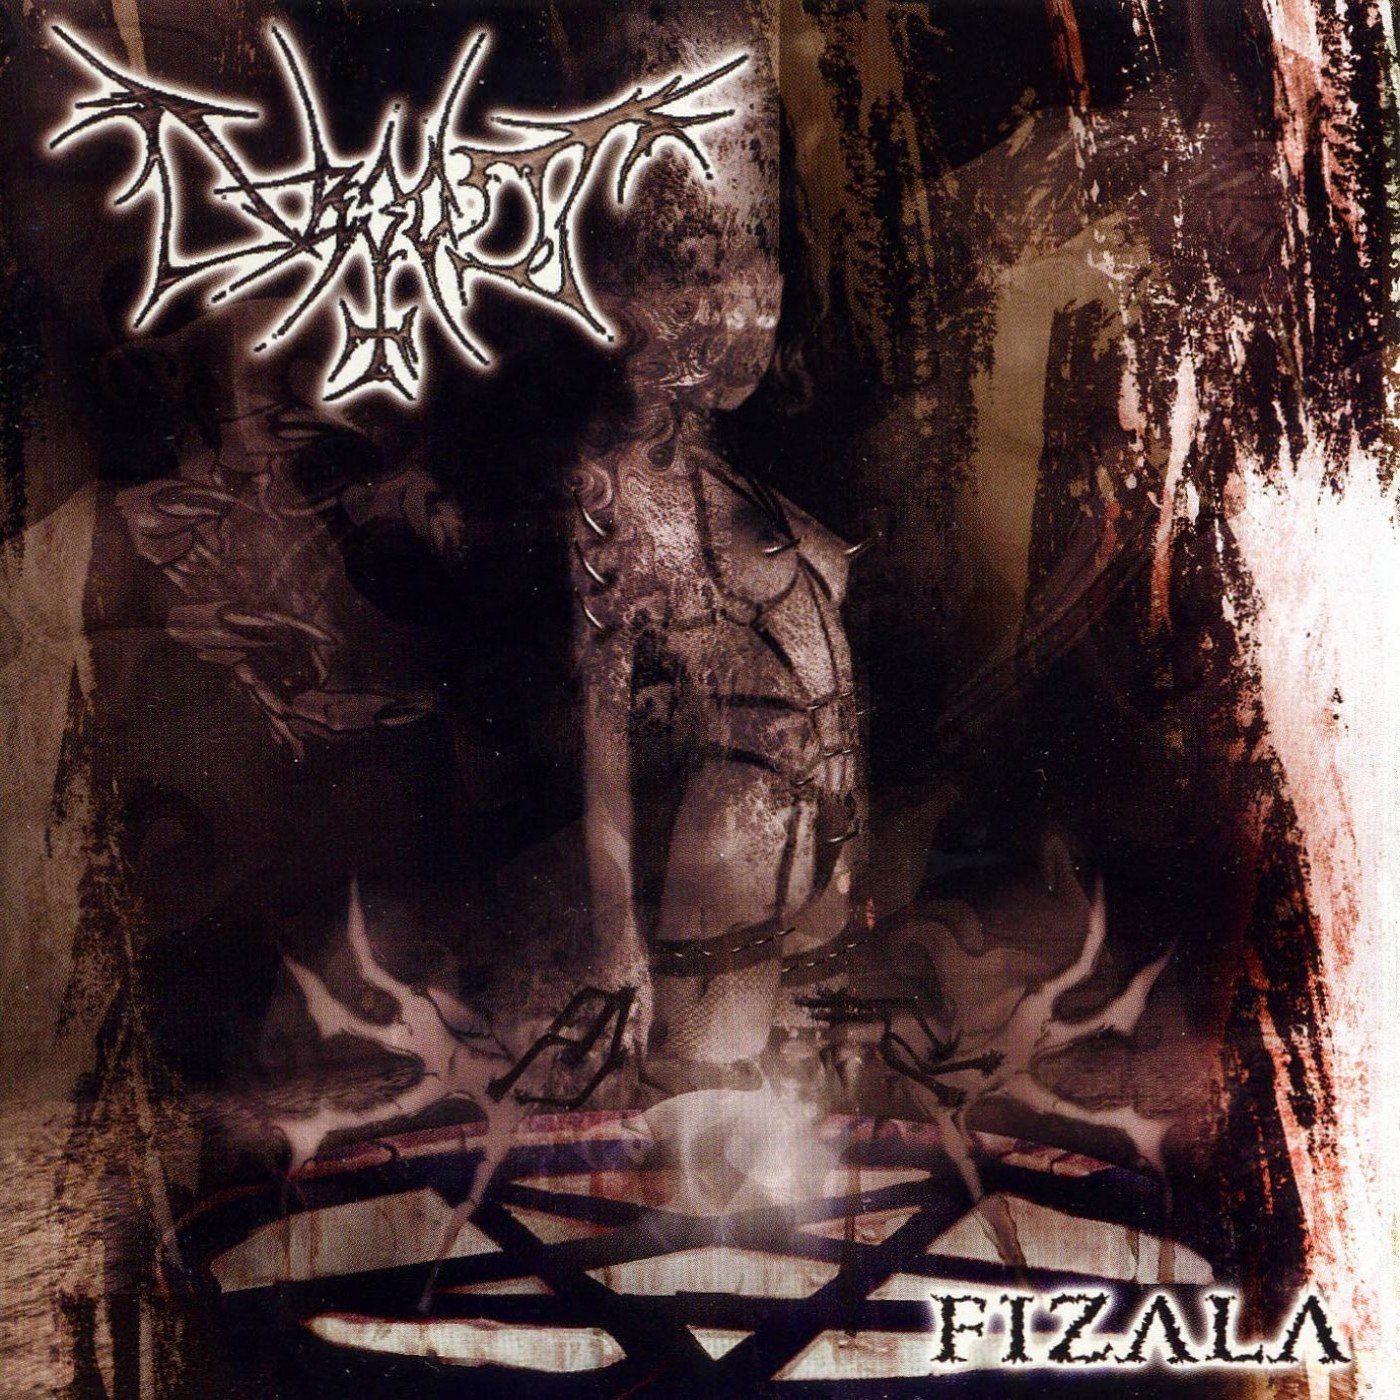 Review for Abgott - Fizala